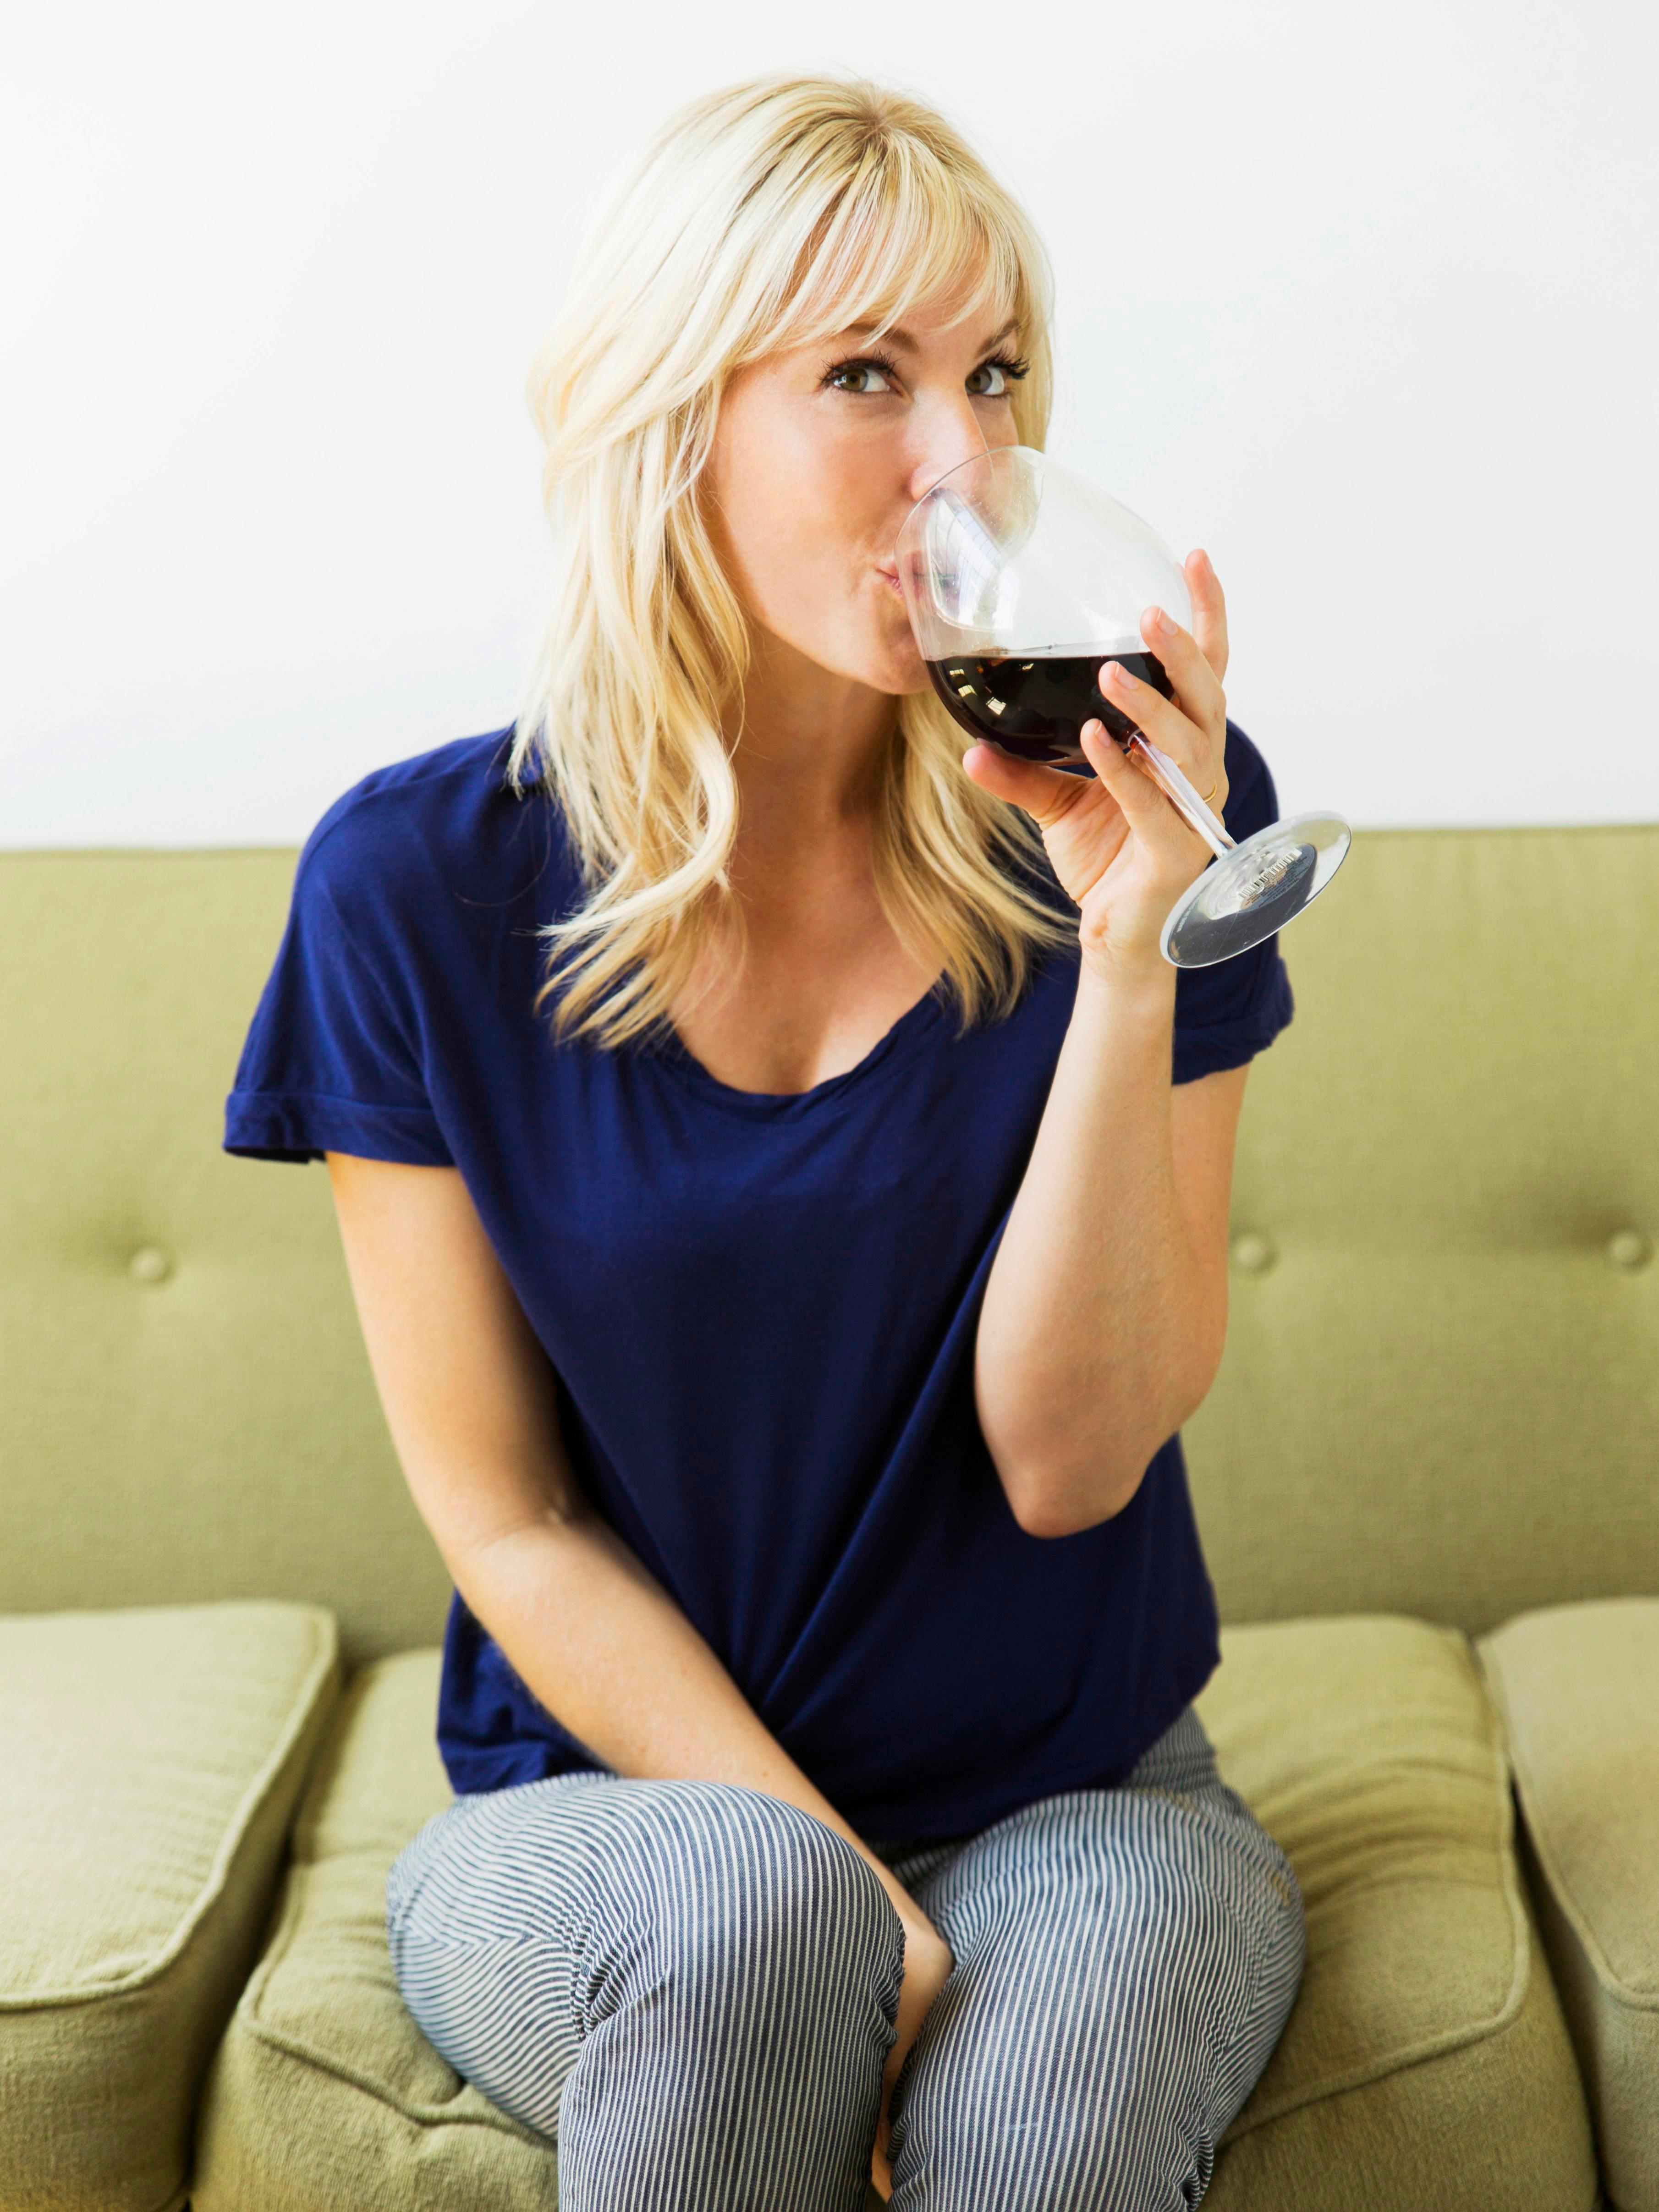 Are you a heavy drinker? Follow these six tips to cut back, from knowing your units to knowing your triggers